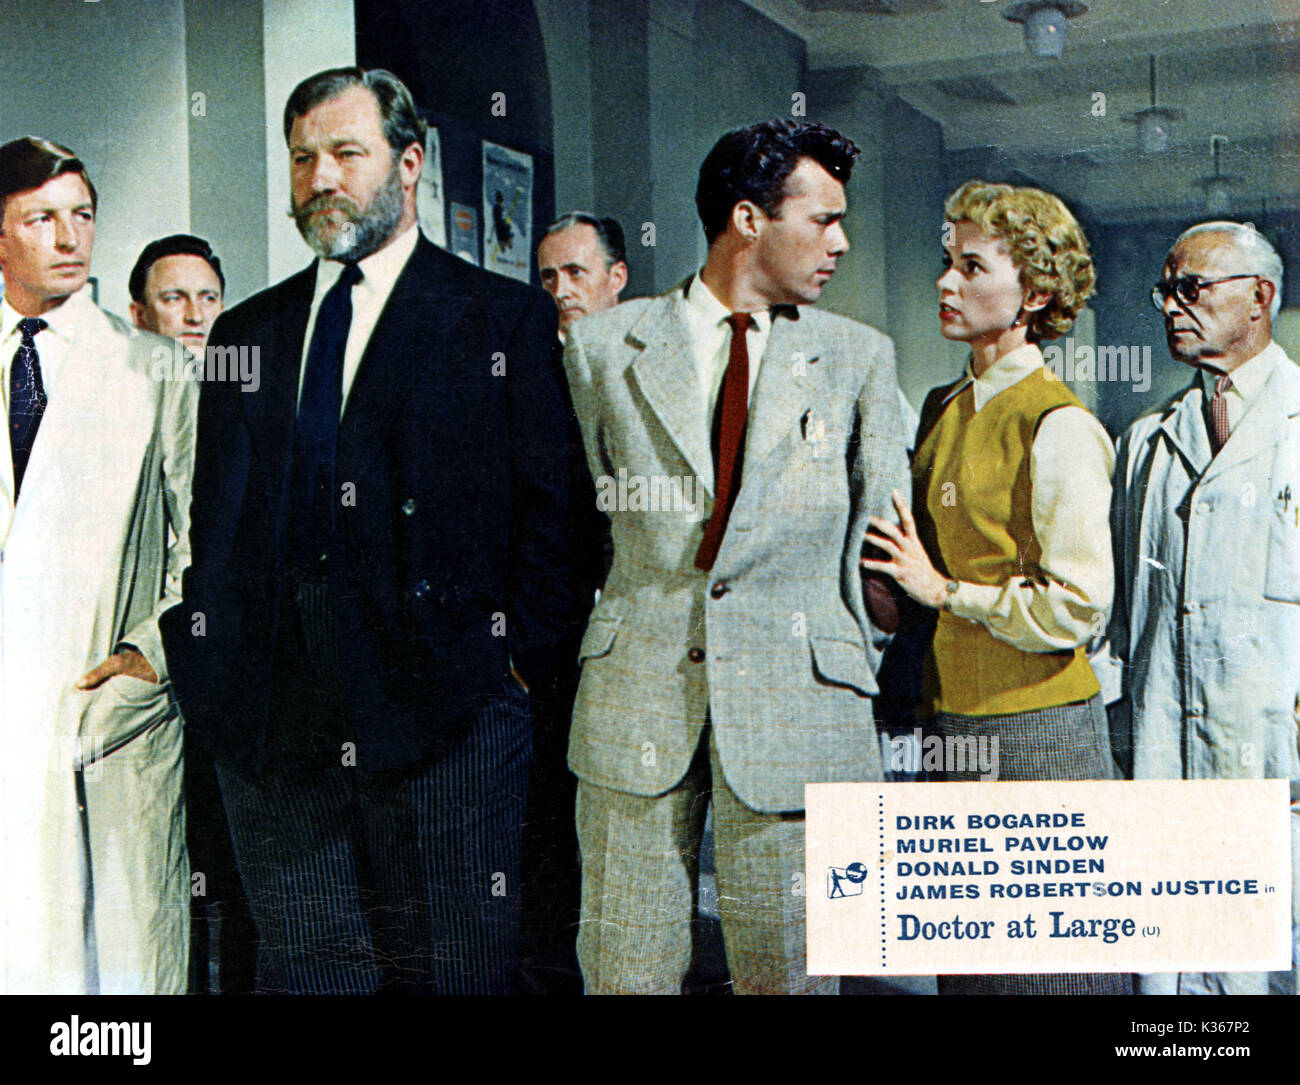 DOCTOR AT LARGE JAMES ROBERTSON-JUSTICE, DIRK BOGARDE AND AND MURIEL PAVLOW - Stock Image